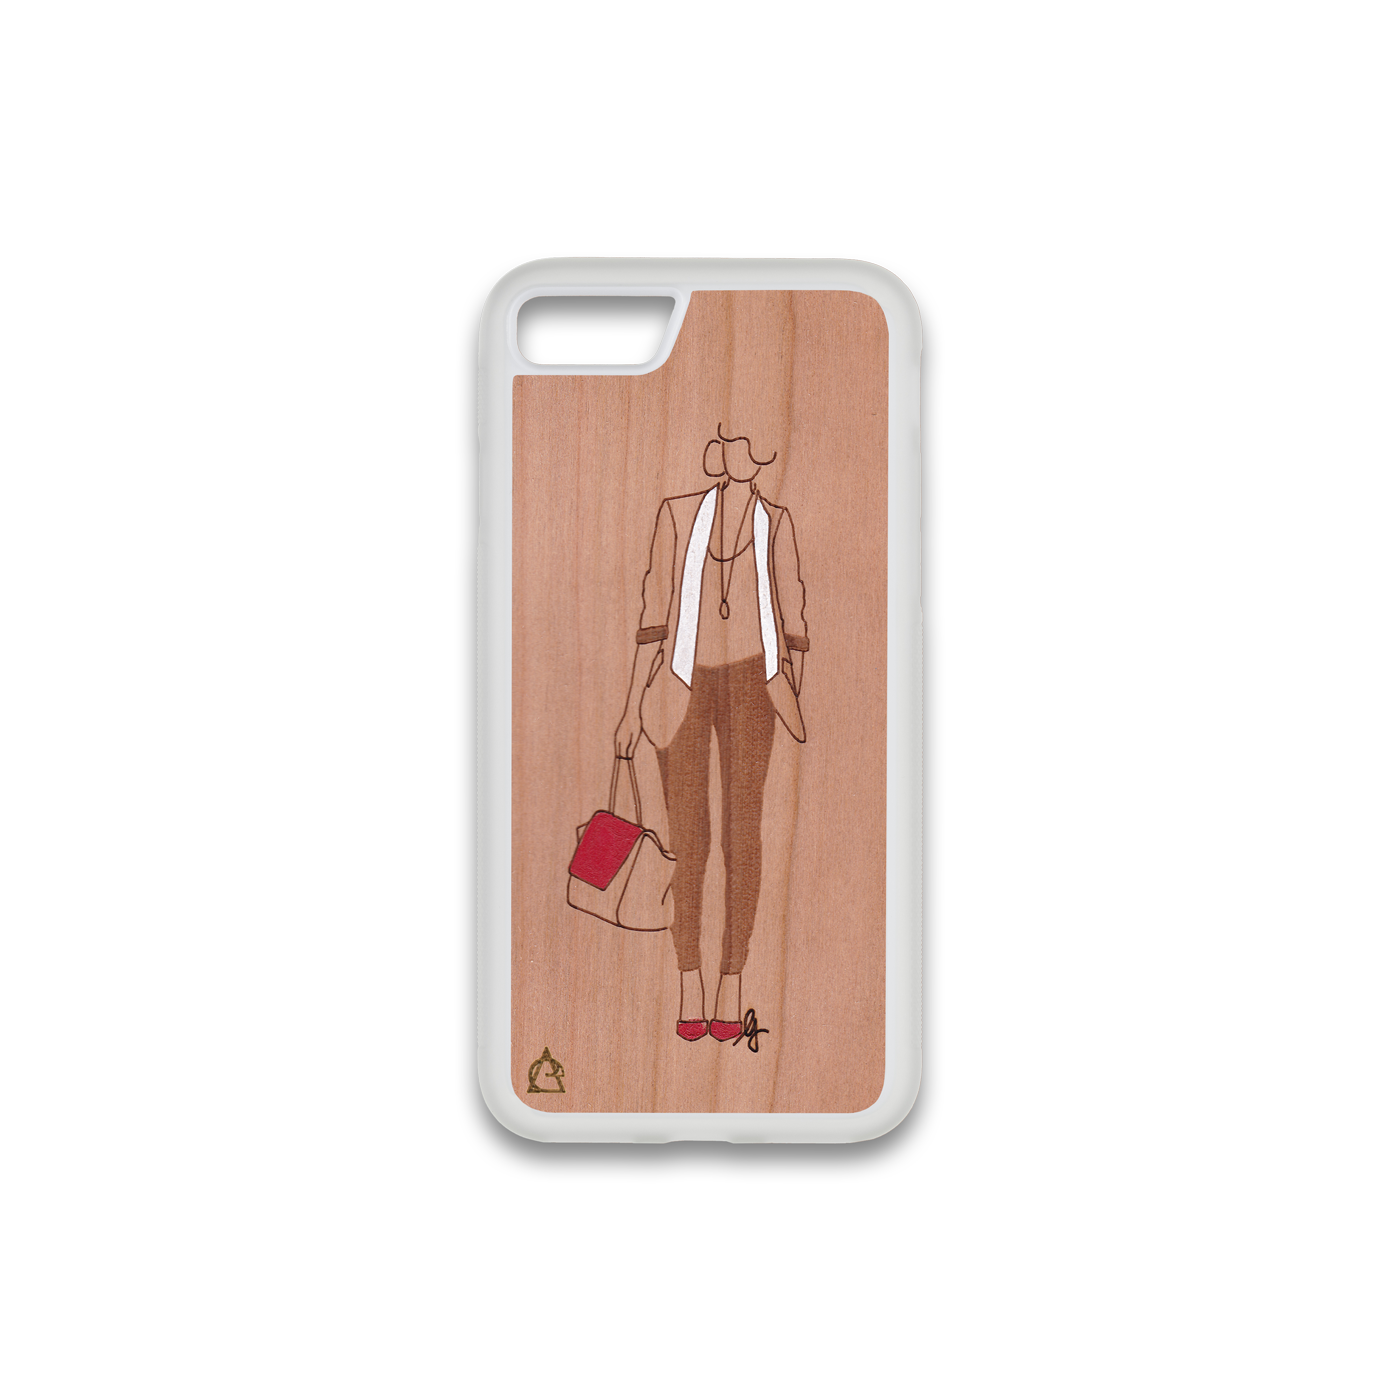 IPHONE-8-DONNA-MODA-WH.png